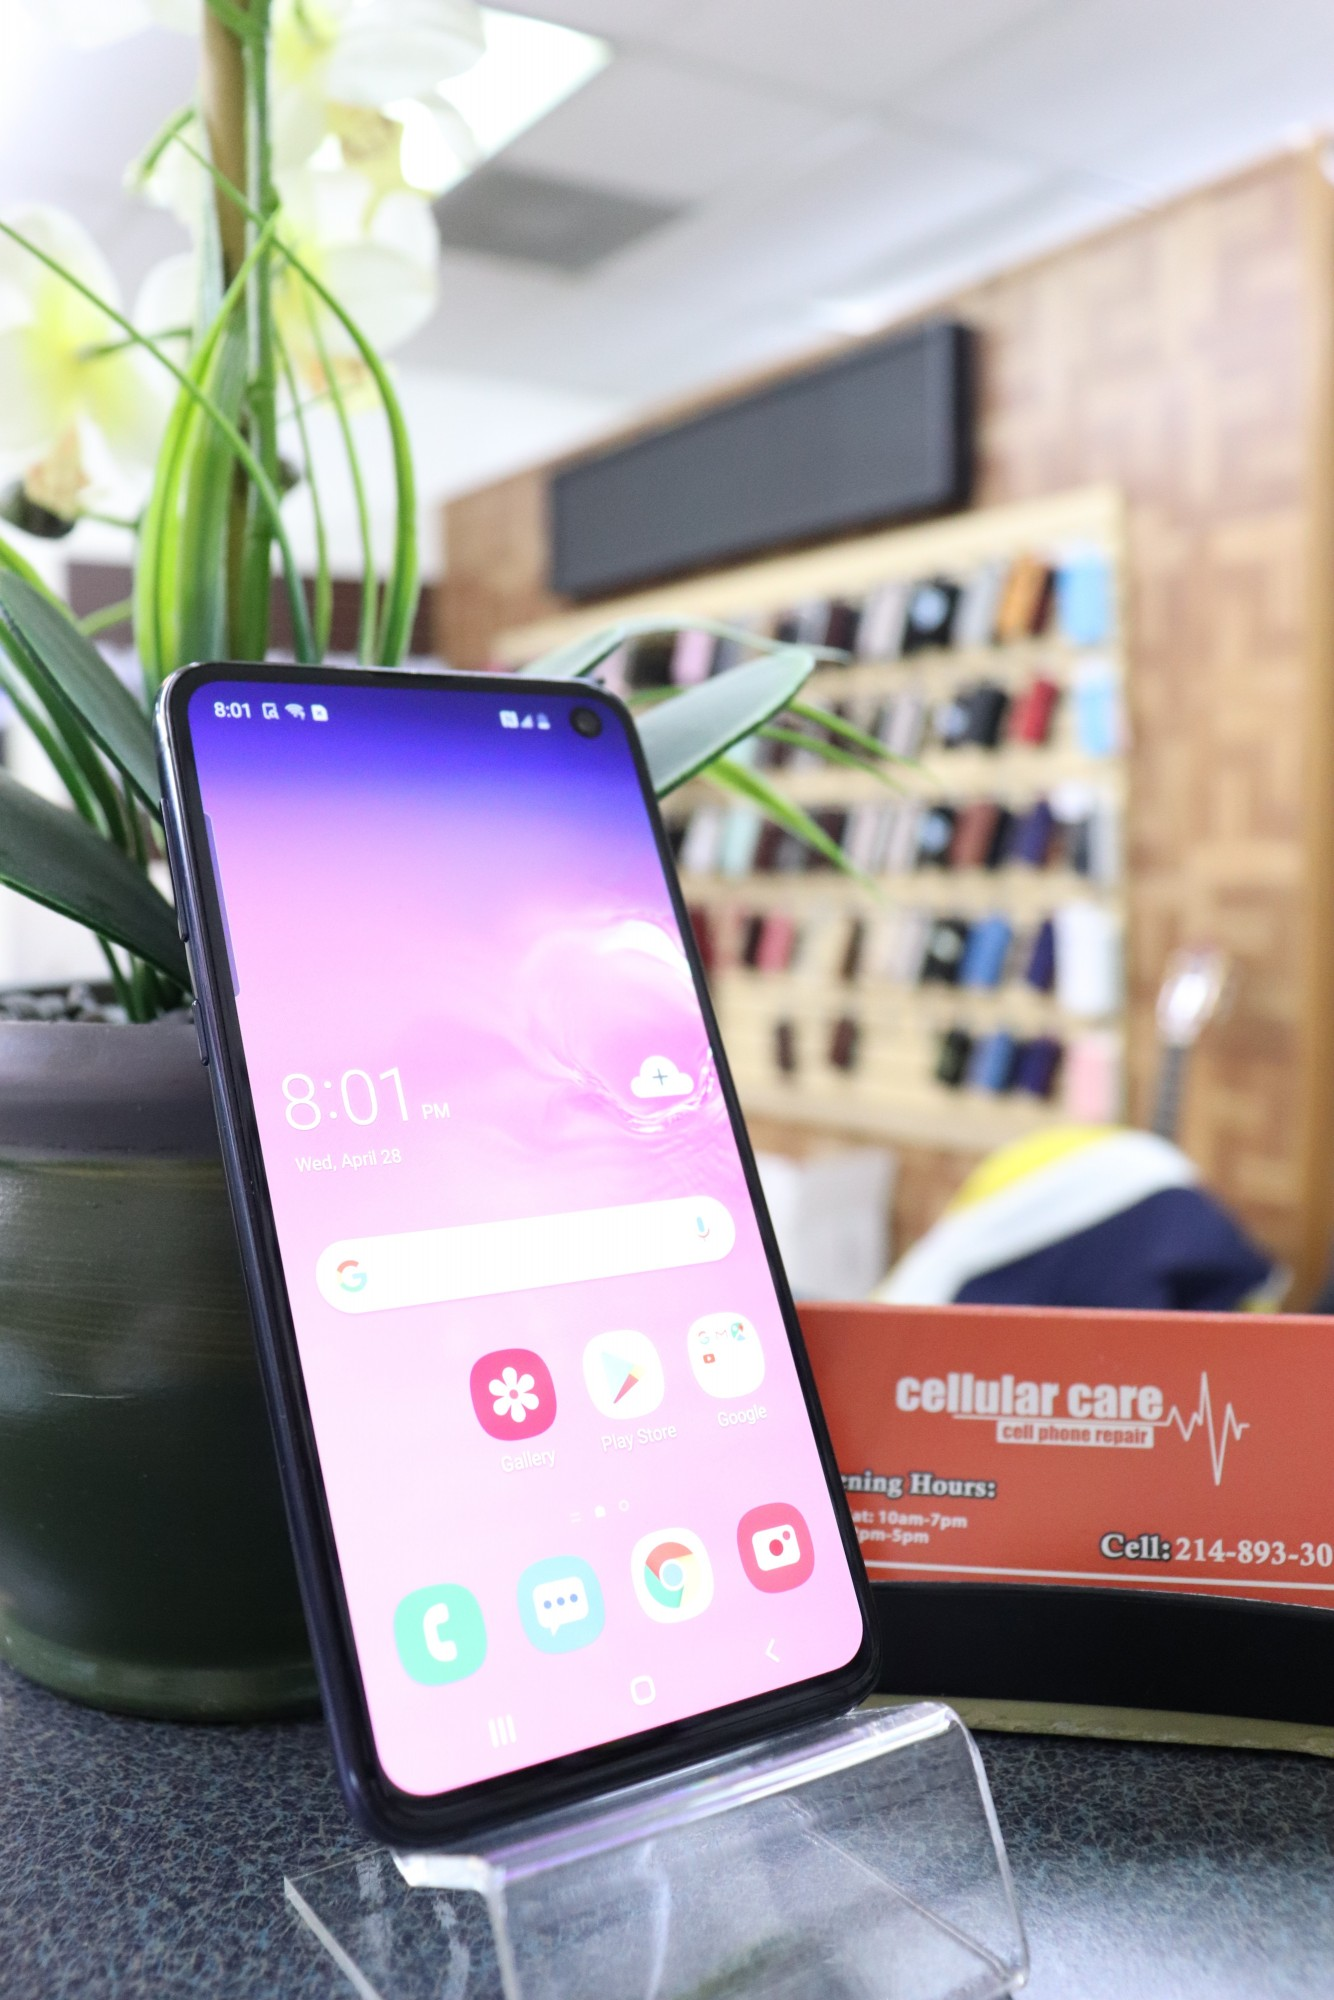 1285 – Samsung S10E 128GB Black Unlocked $280 – Store Pick Up Address: Cellular Care 300 N Coit Rd #157 Richardson TX, 75080 Mon-Sat: 11Am to 7Pm Sun: 12 to 5Pm *About this item: -Condition: -30 Days Warranty By Cellular Care.